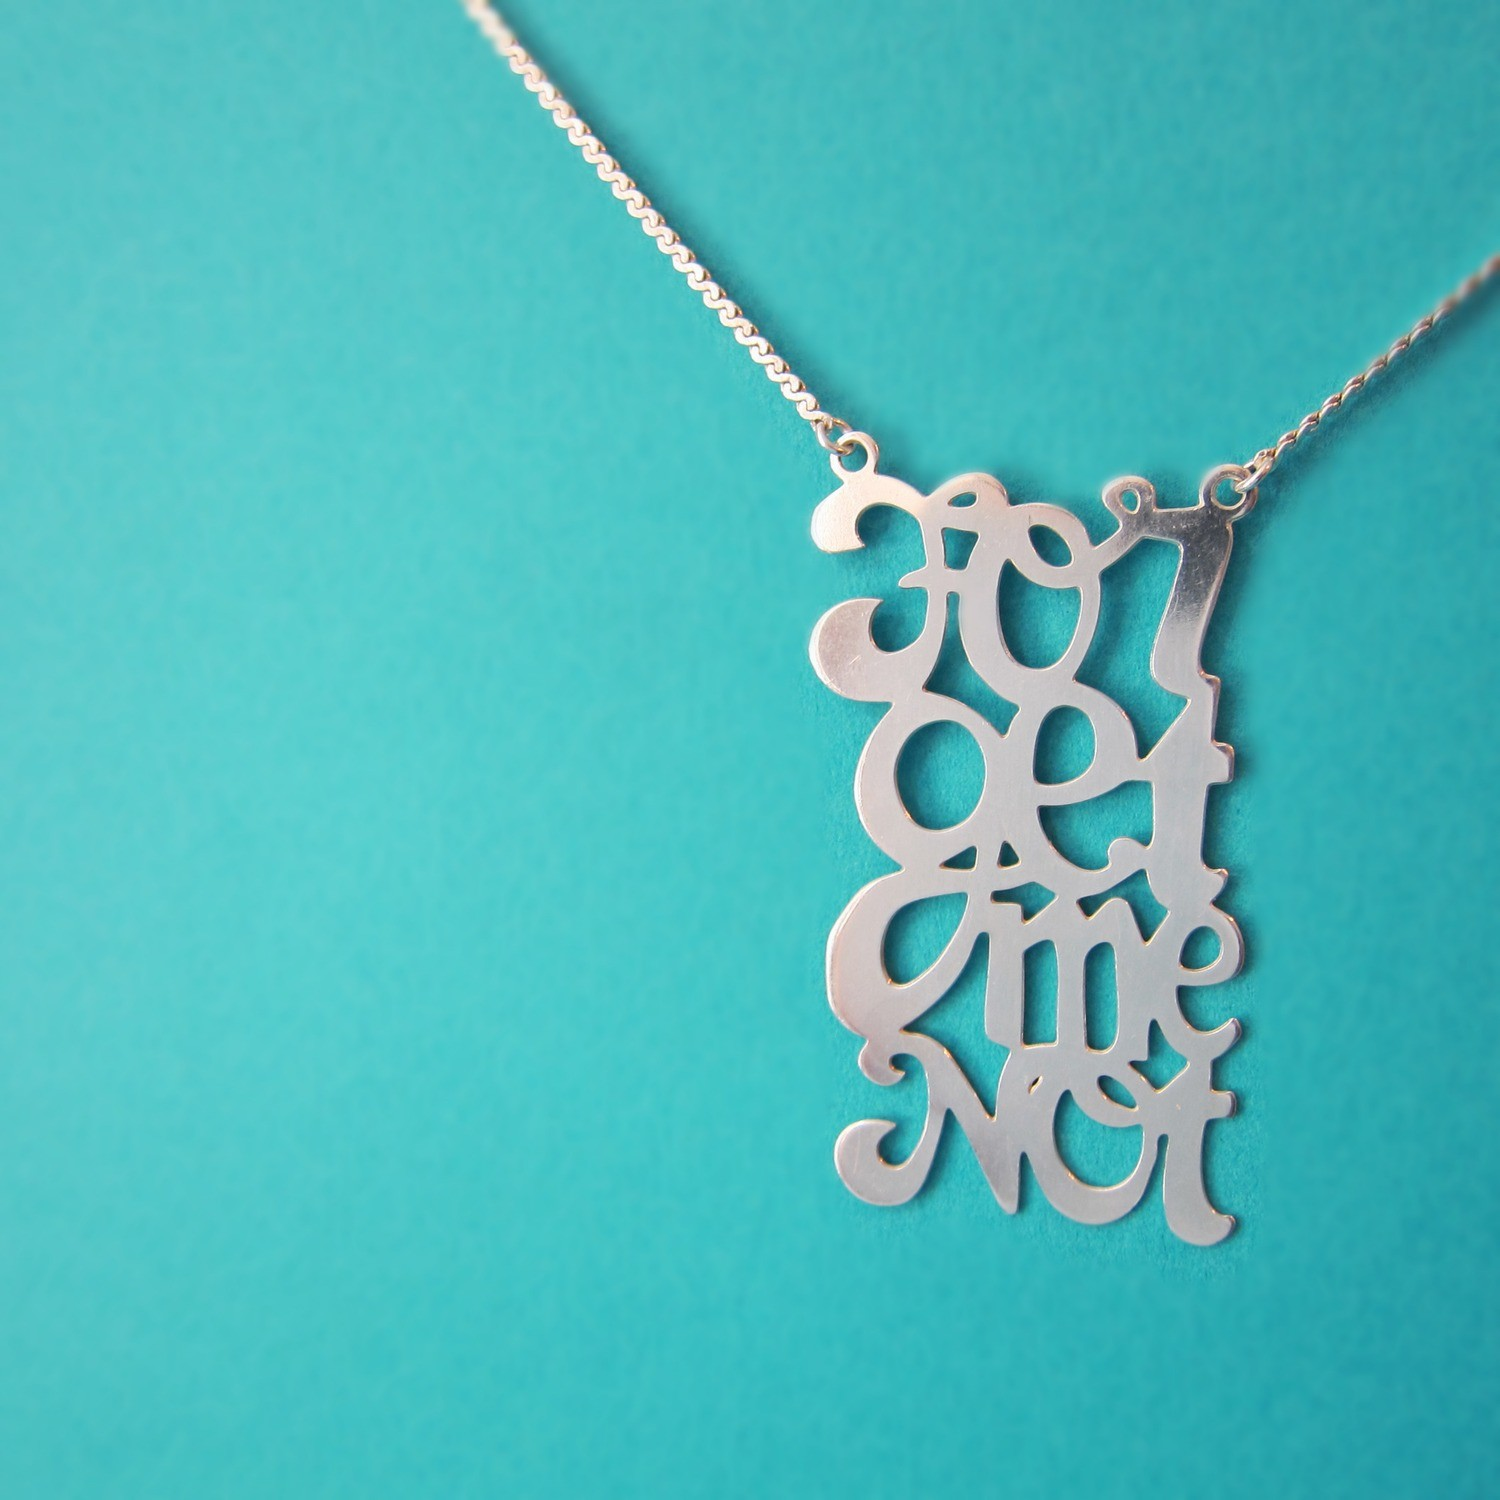 Collier Forget Me Not - Argent